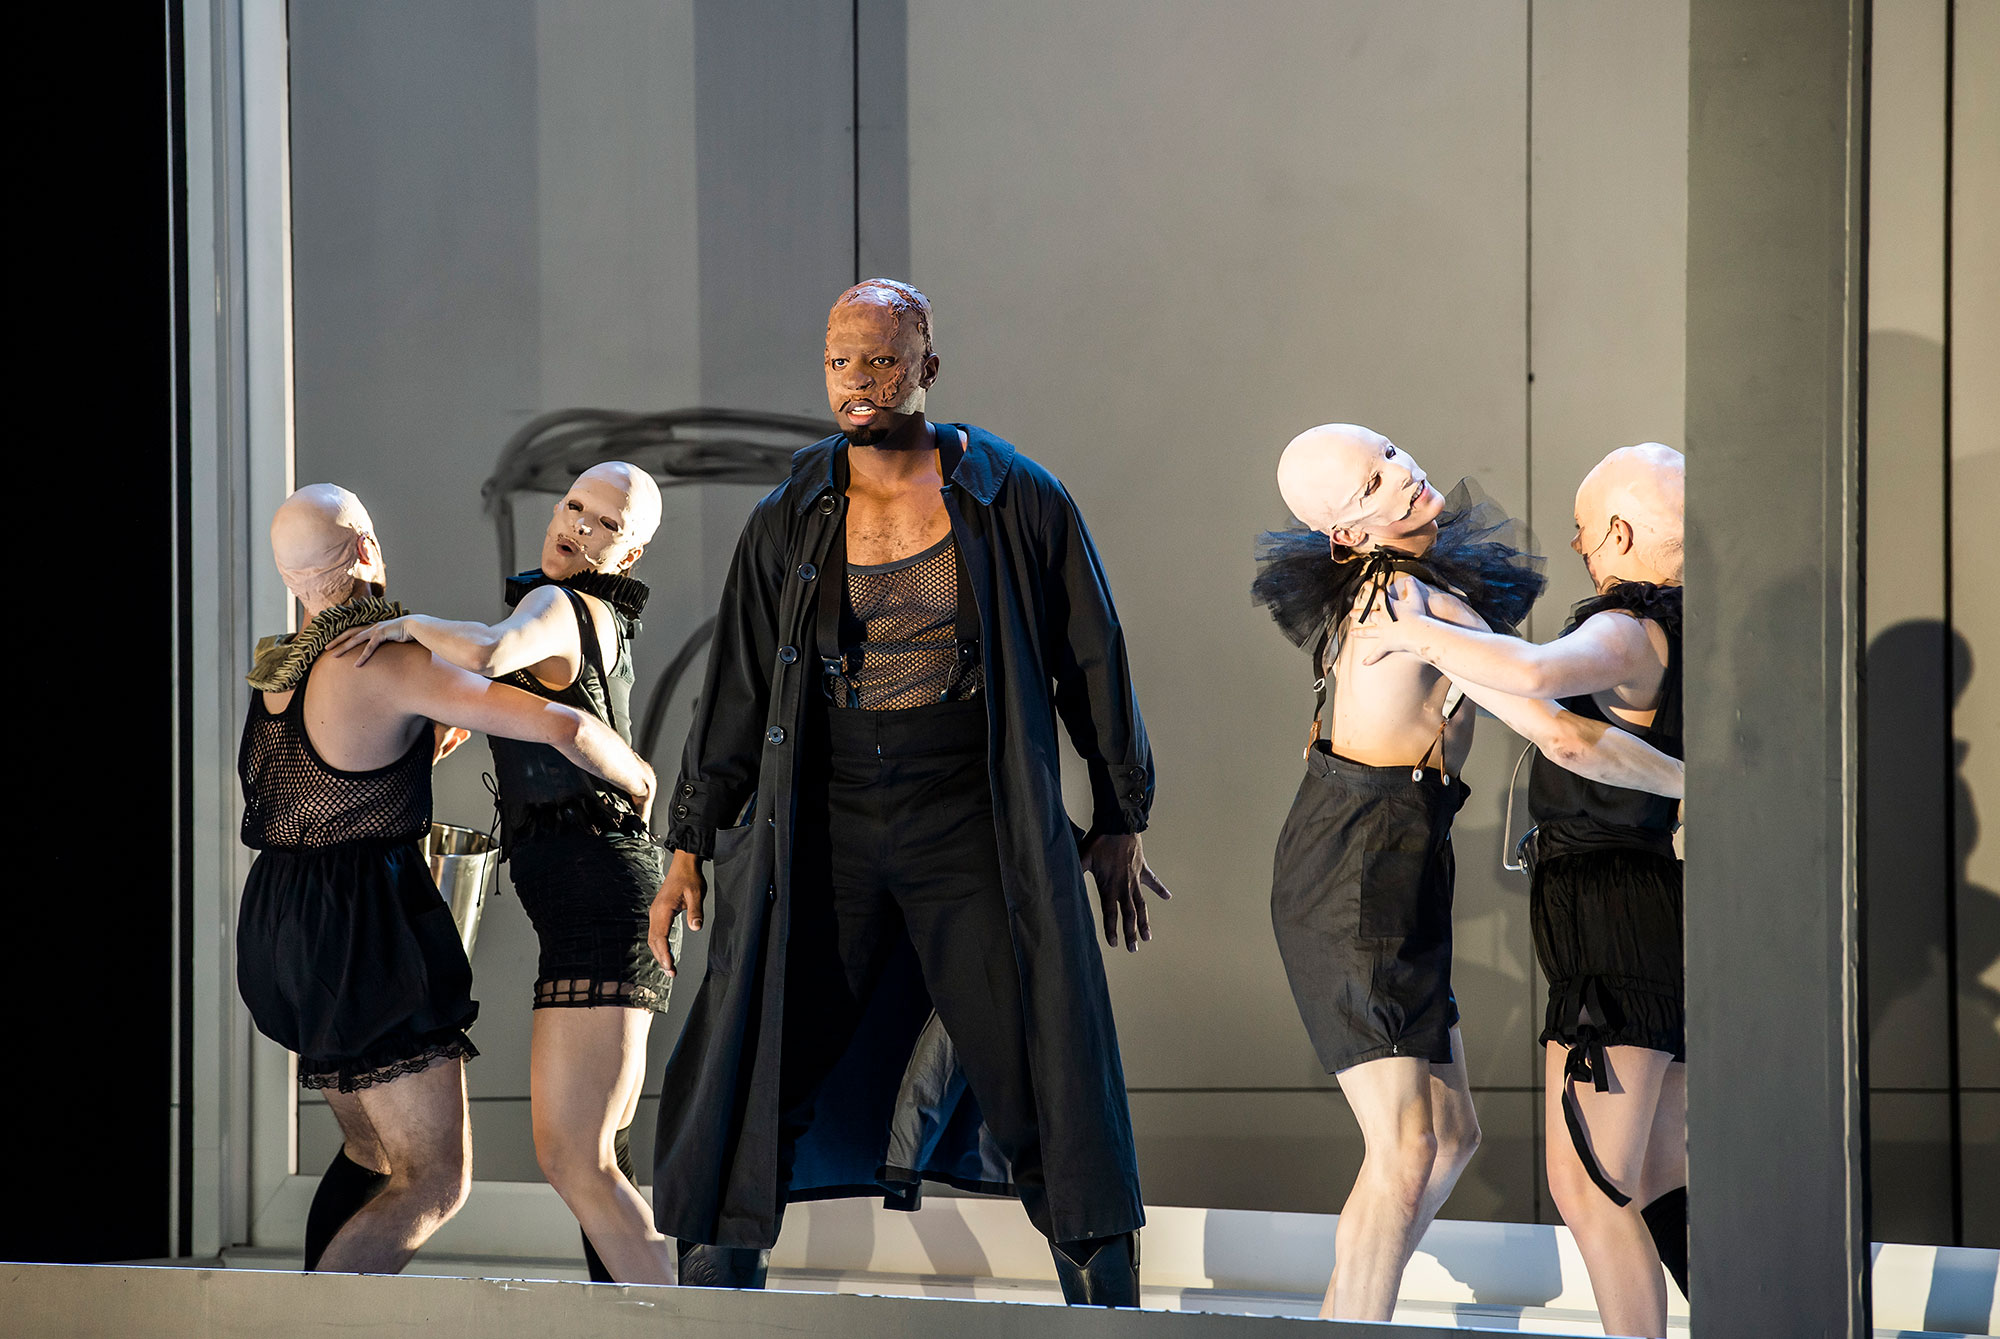 Wurm stands in front of grotesque dancers in pairs